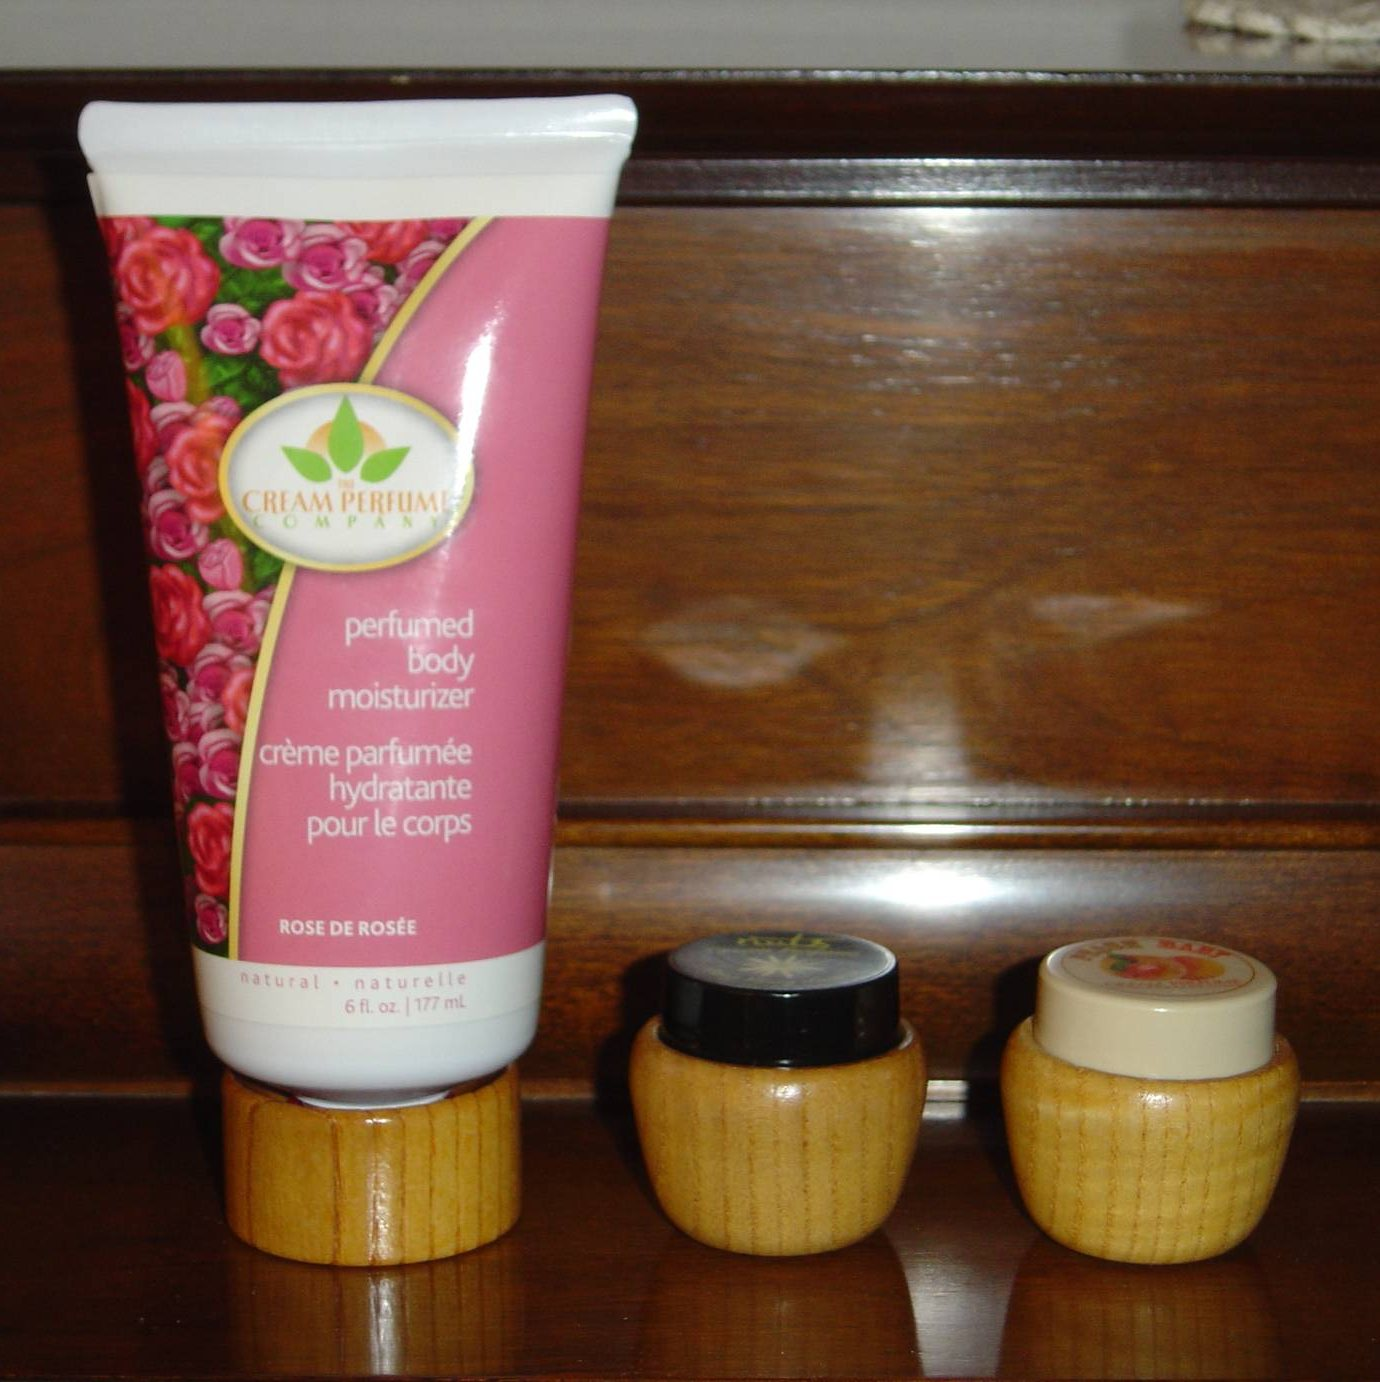 THE CREAM PERFUME COMPANY Rose Perfumed Body Moisturizer and two solid perumes